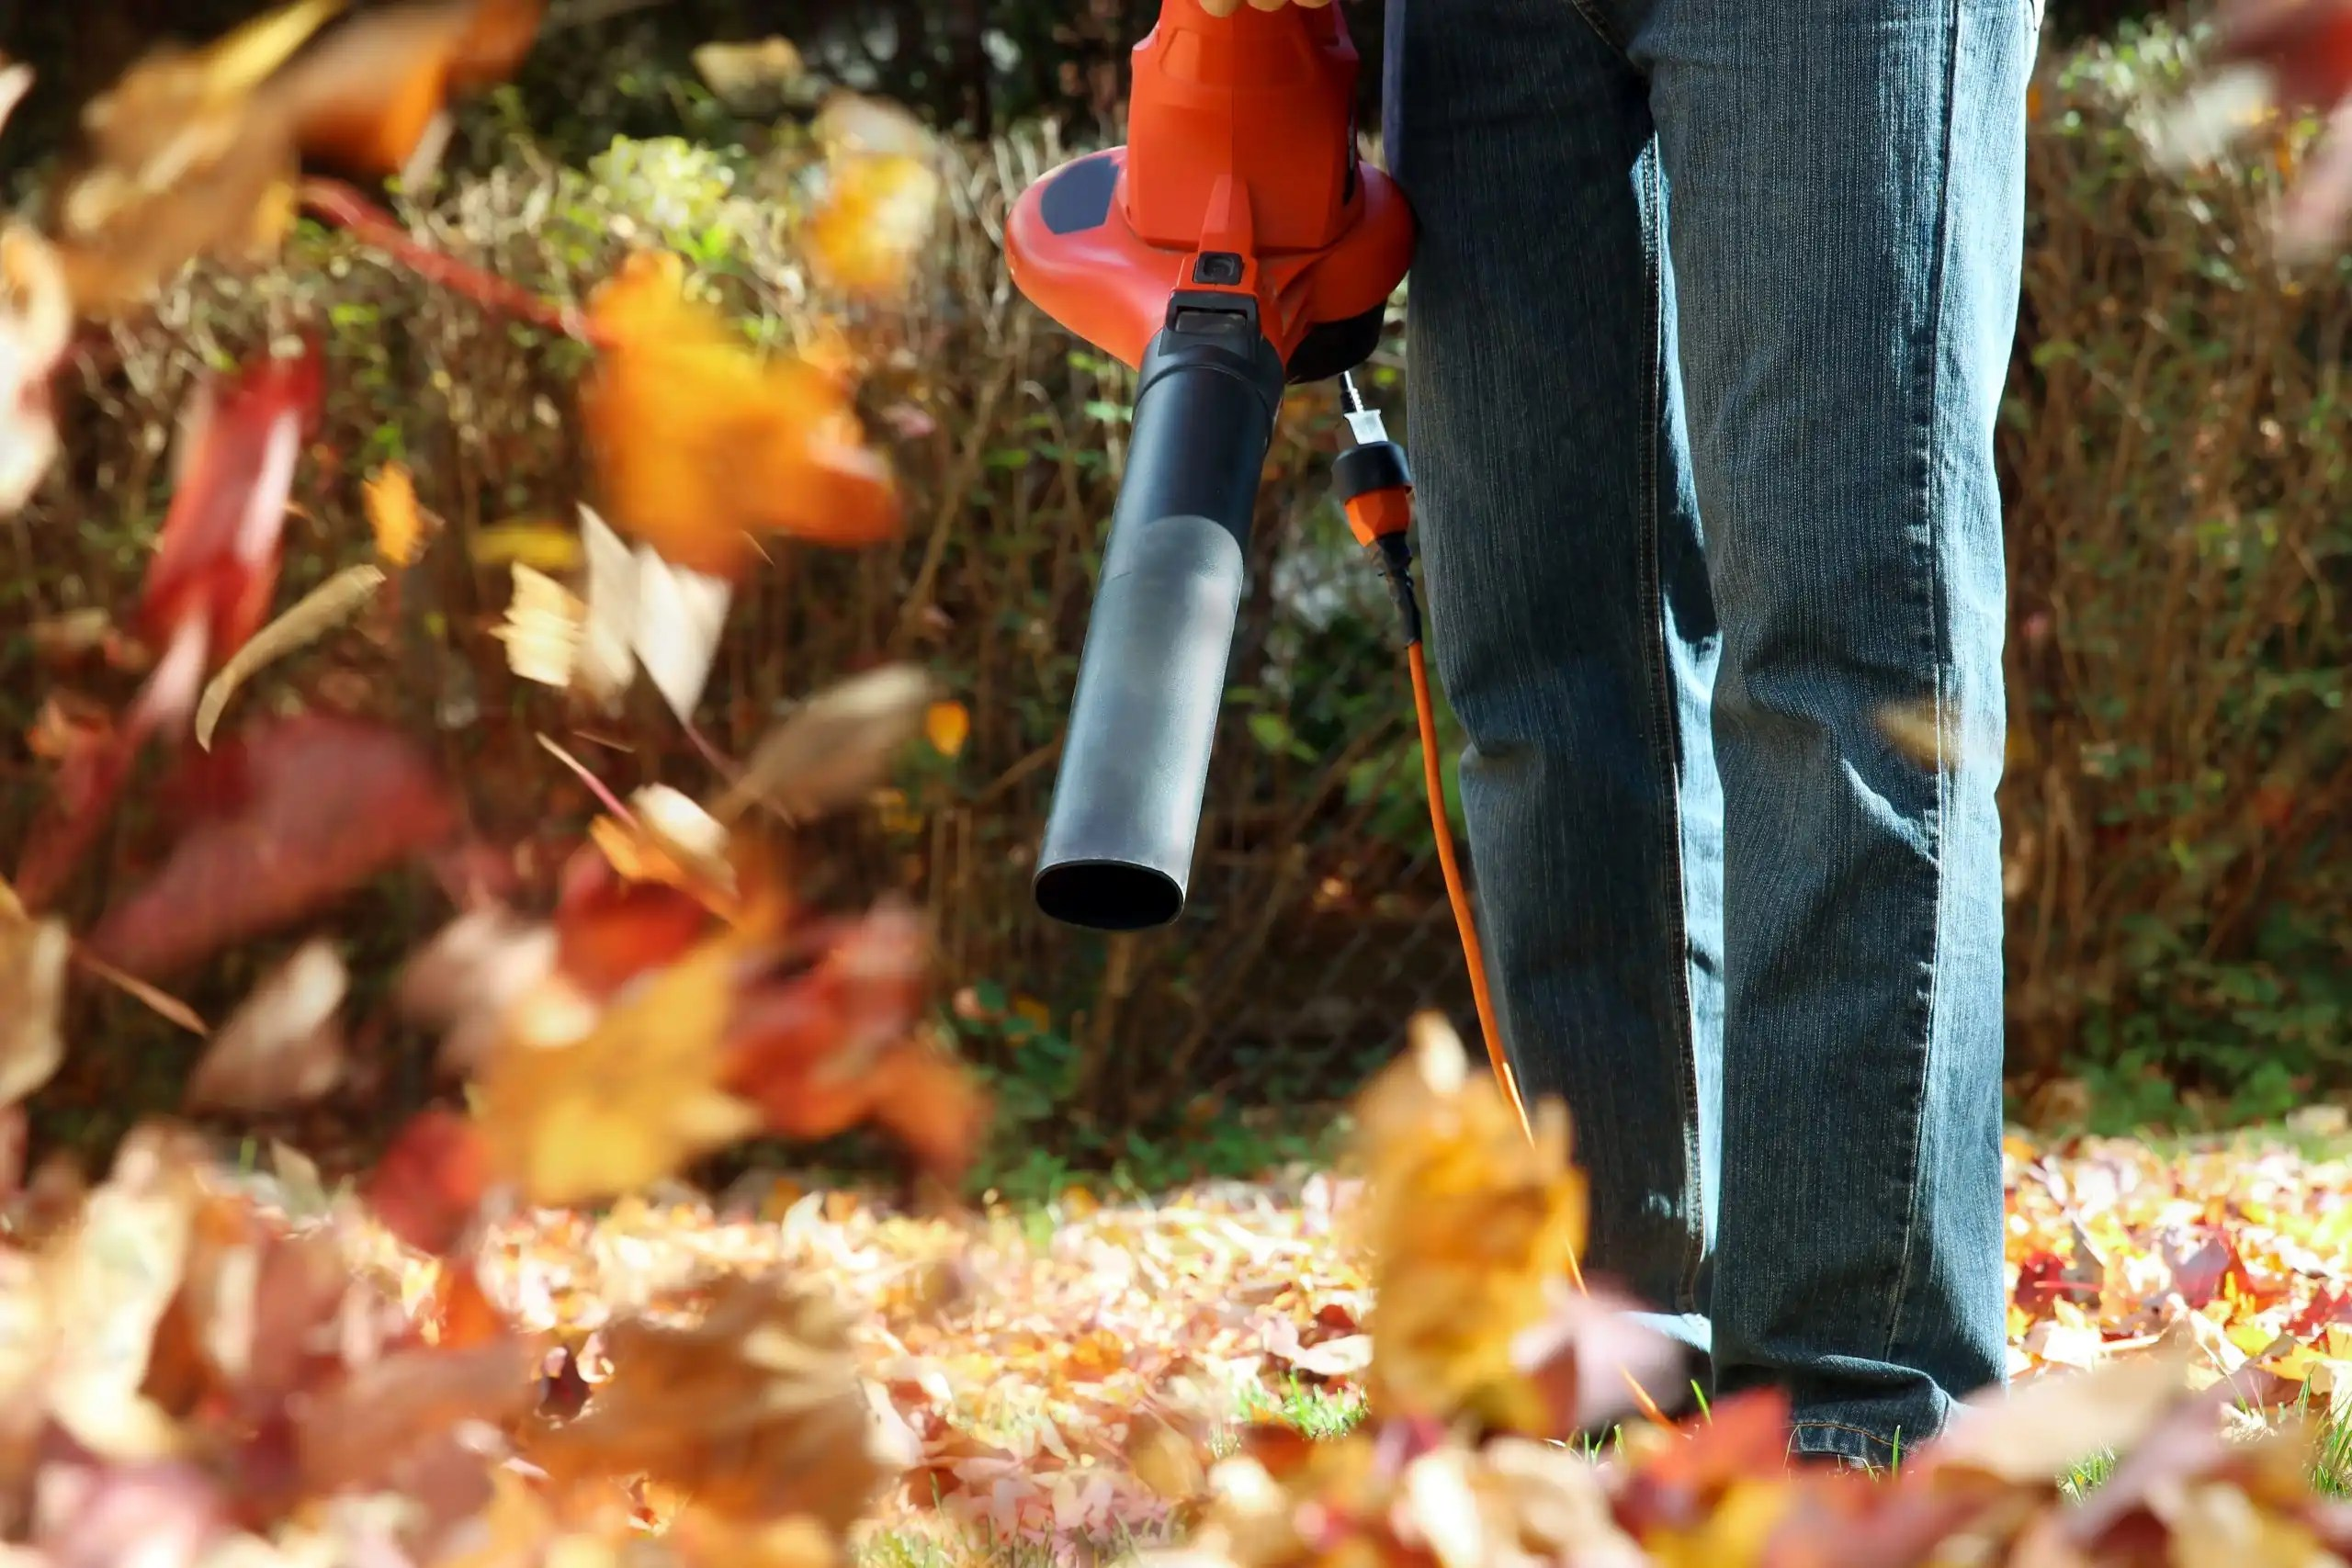 blowing leaves with electric leaf blower in fall